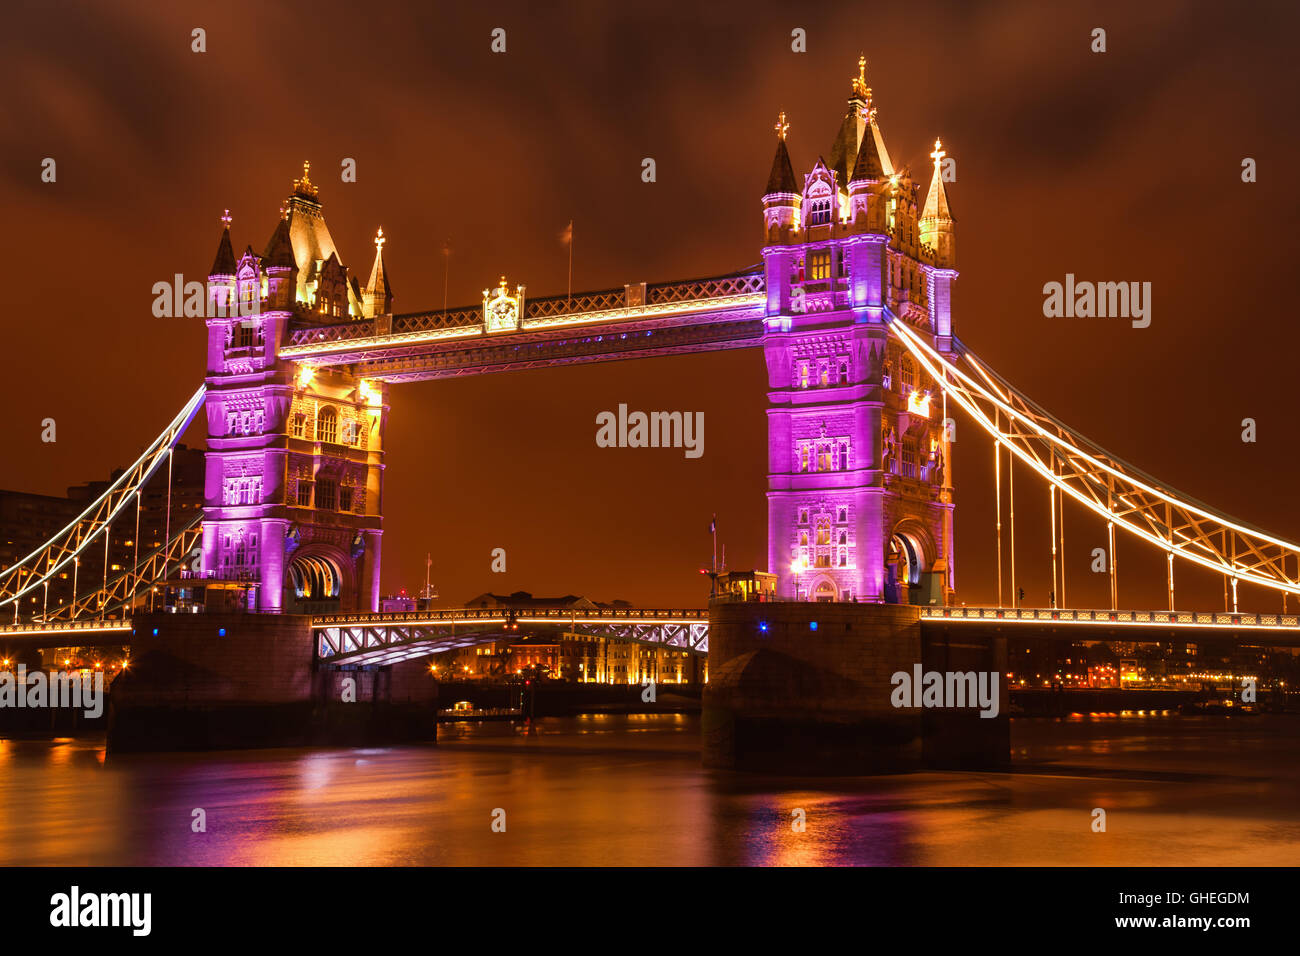 Vista del Tower Bridge festively illuminato. Immagini Stock